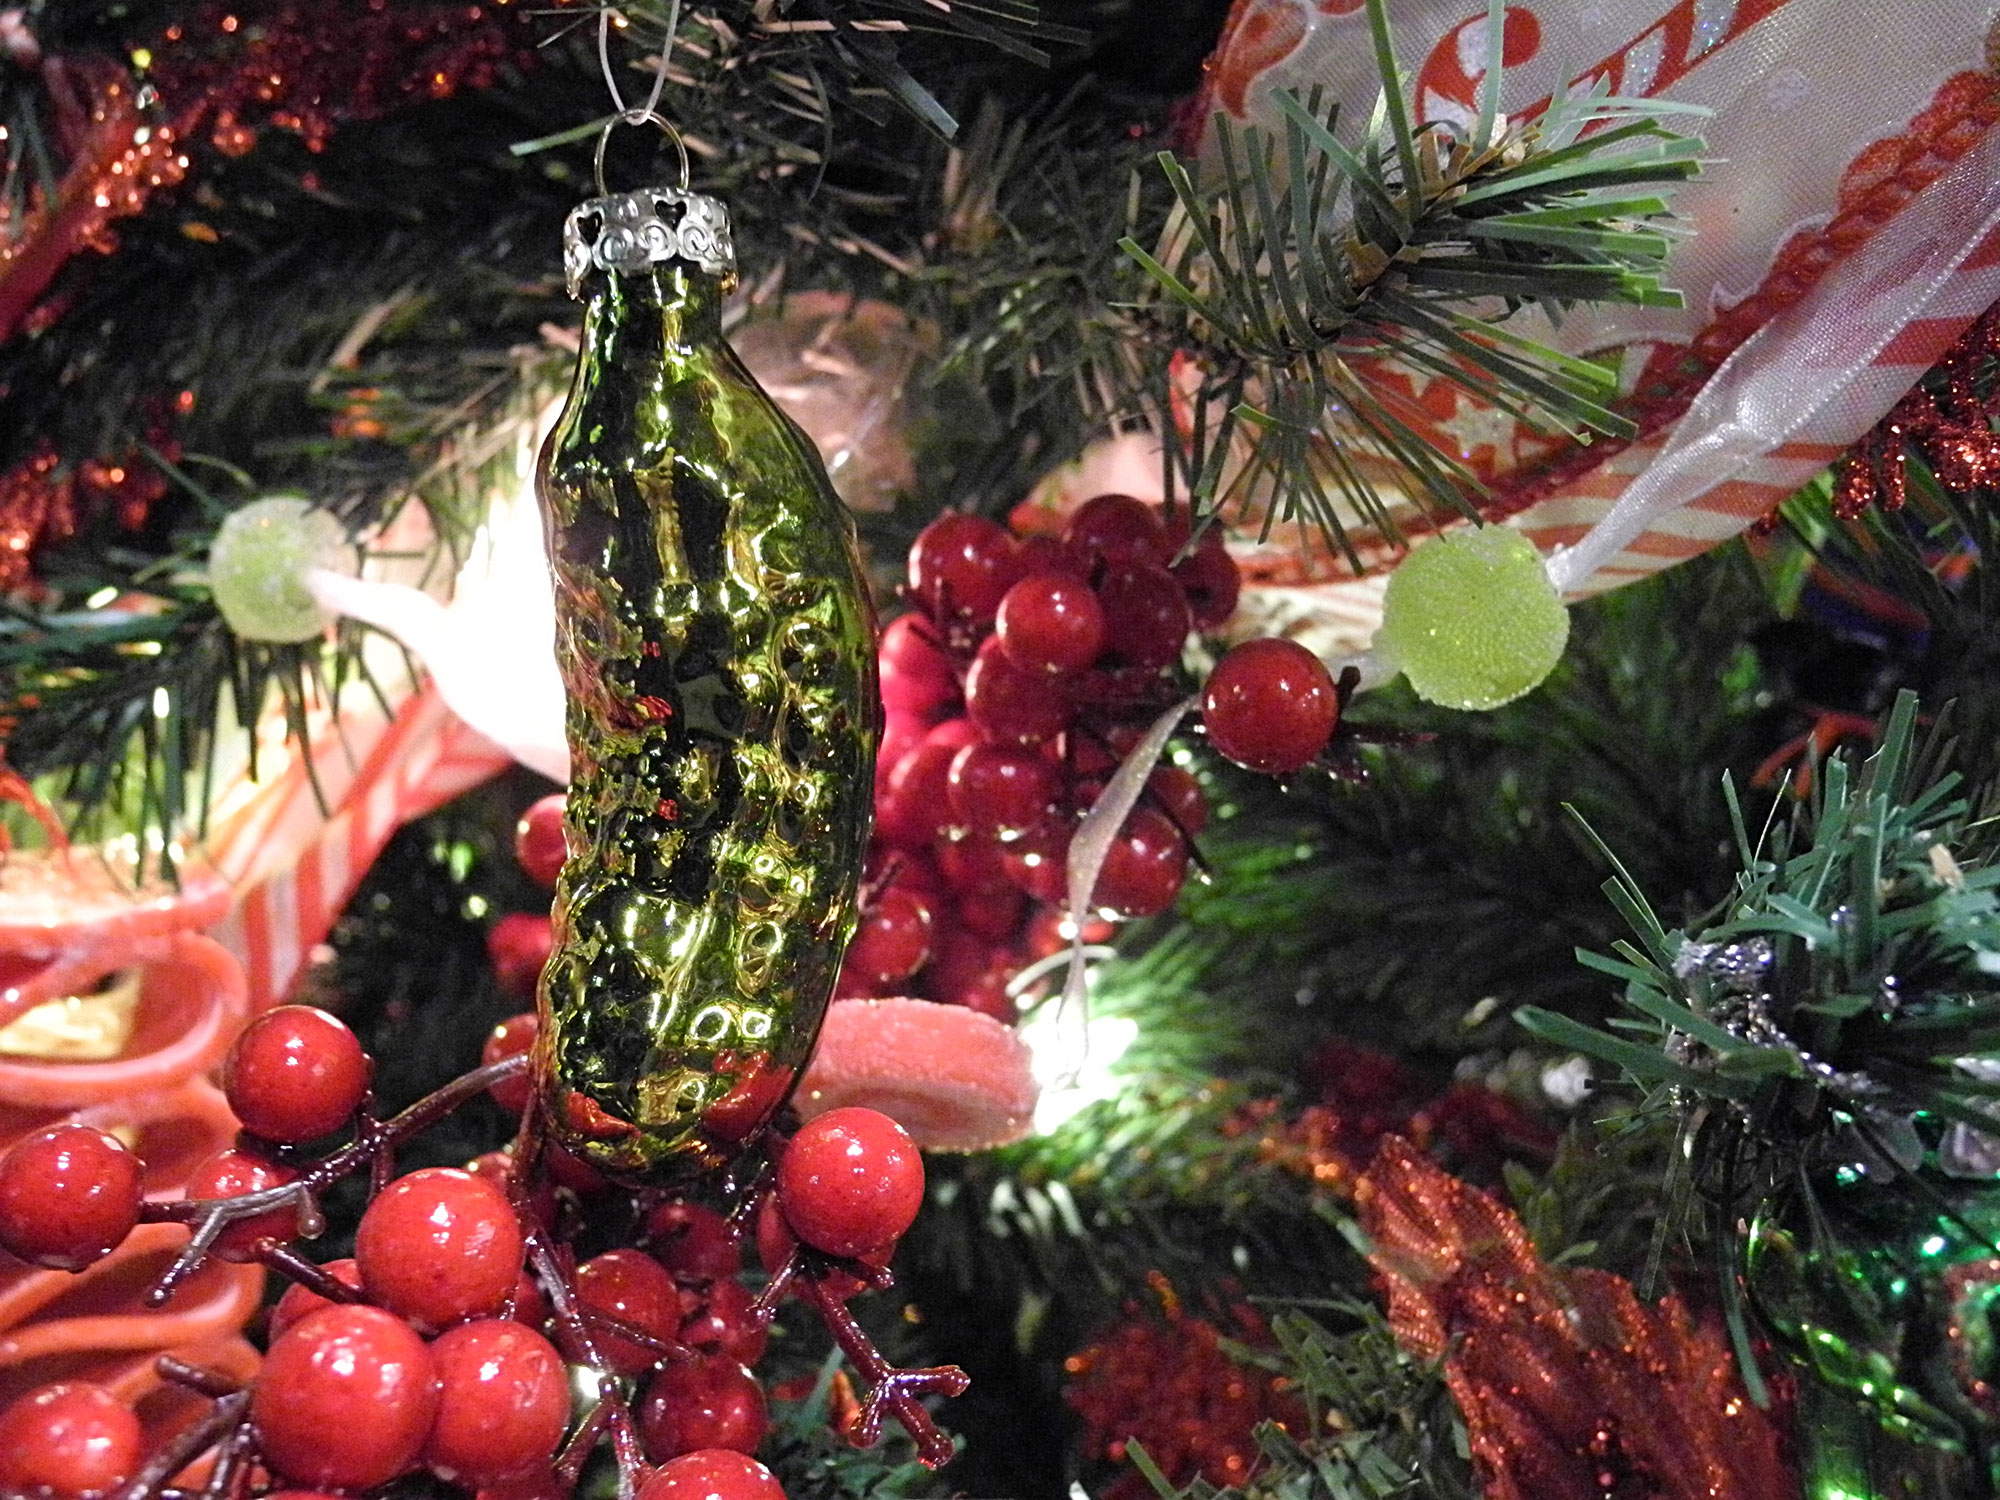 Pickle ornament for the Christmas tree